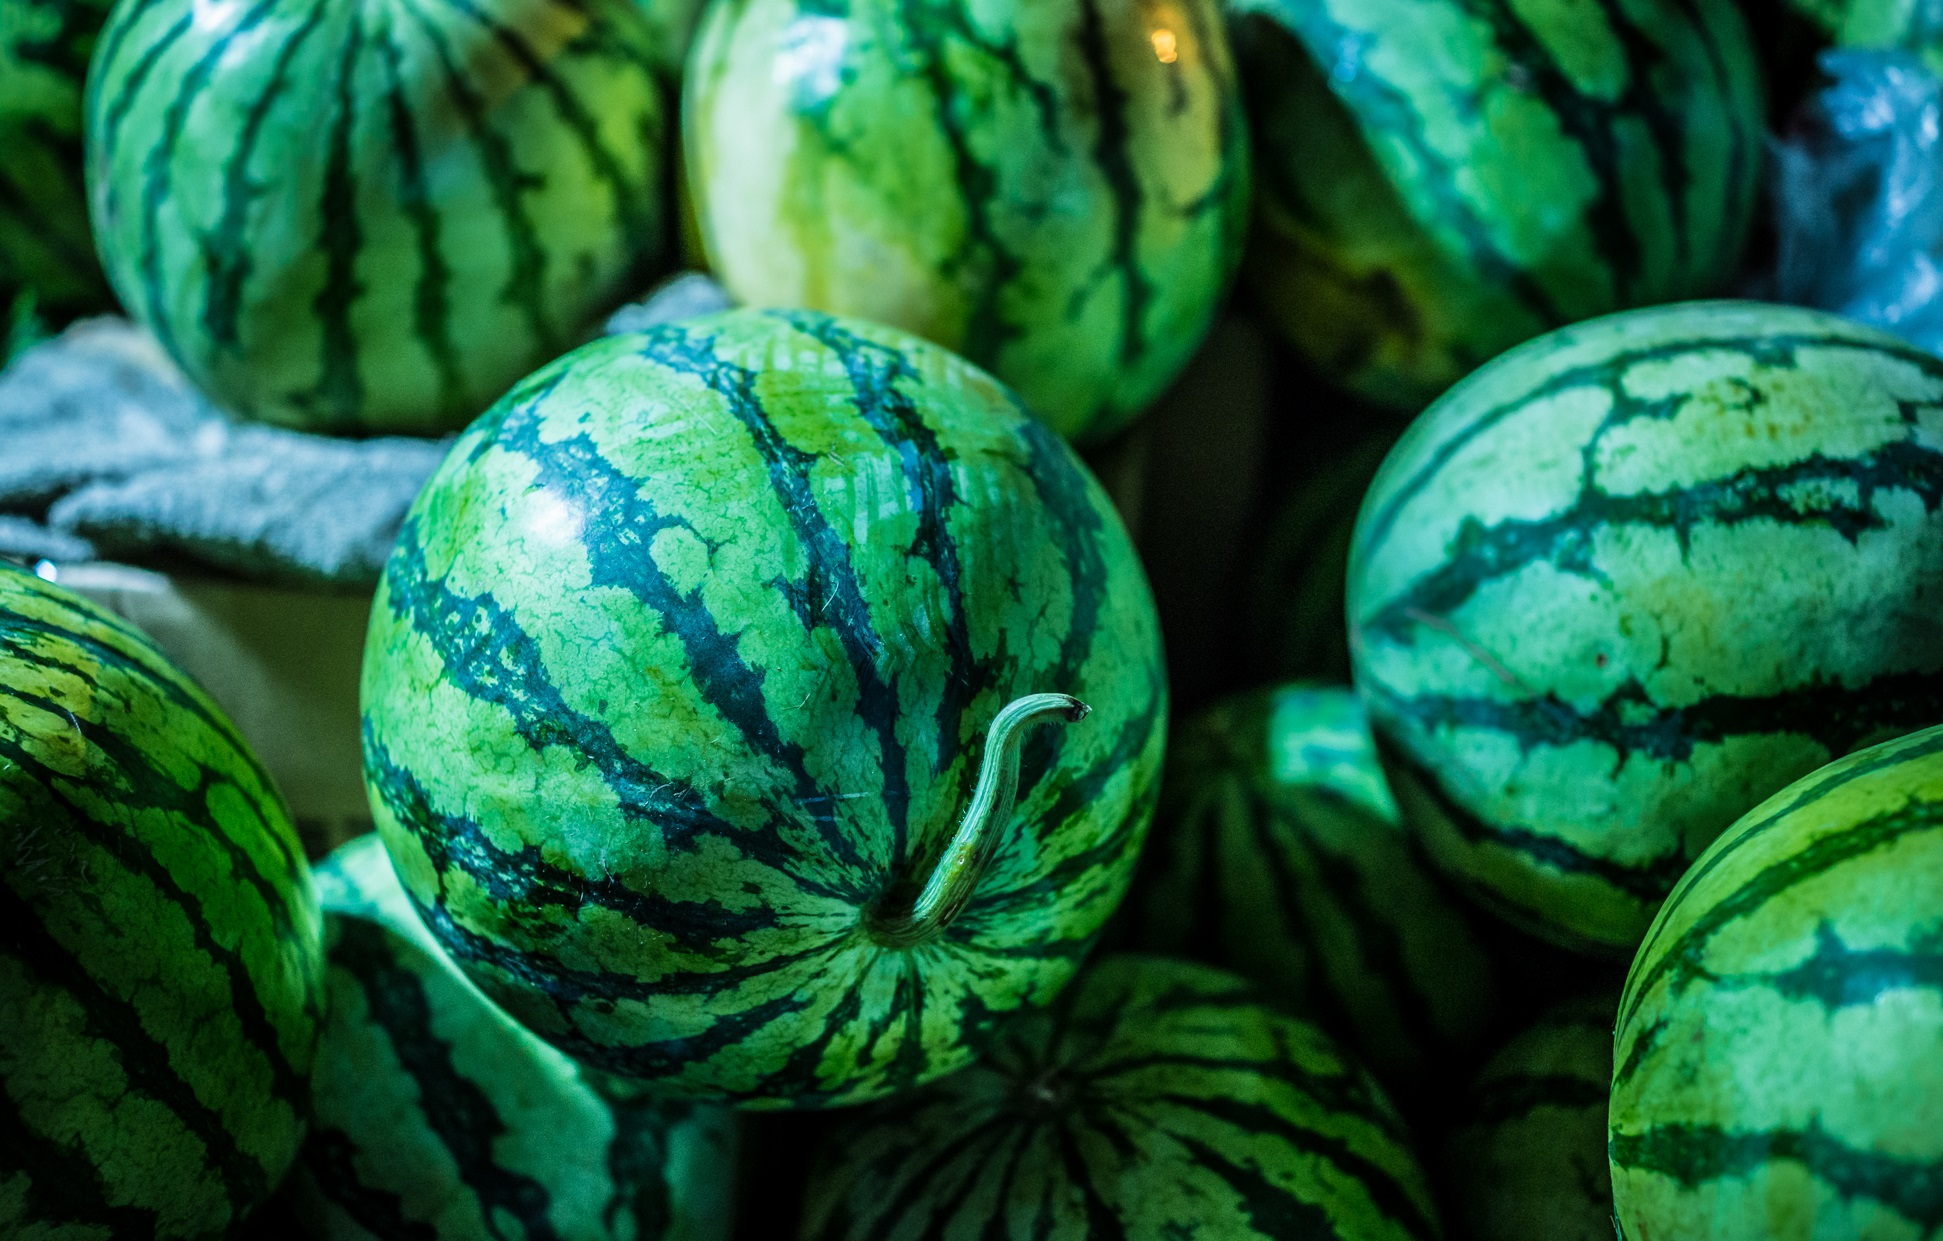 Watermelon Season Has Officially Started In Moscow